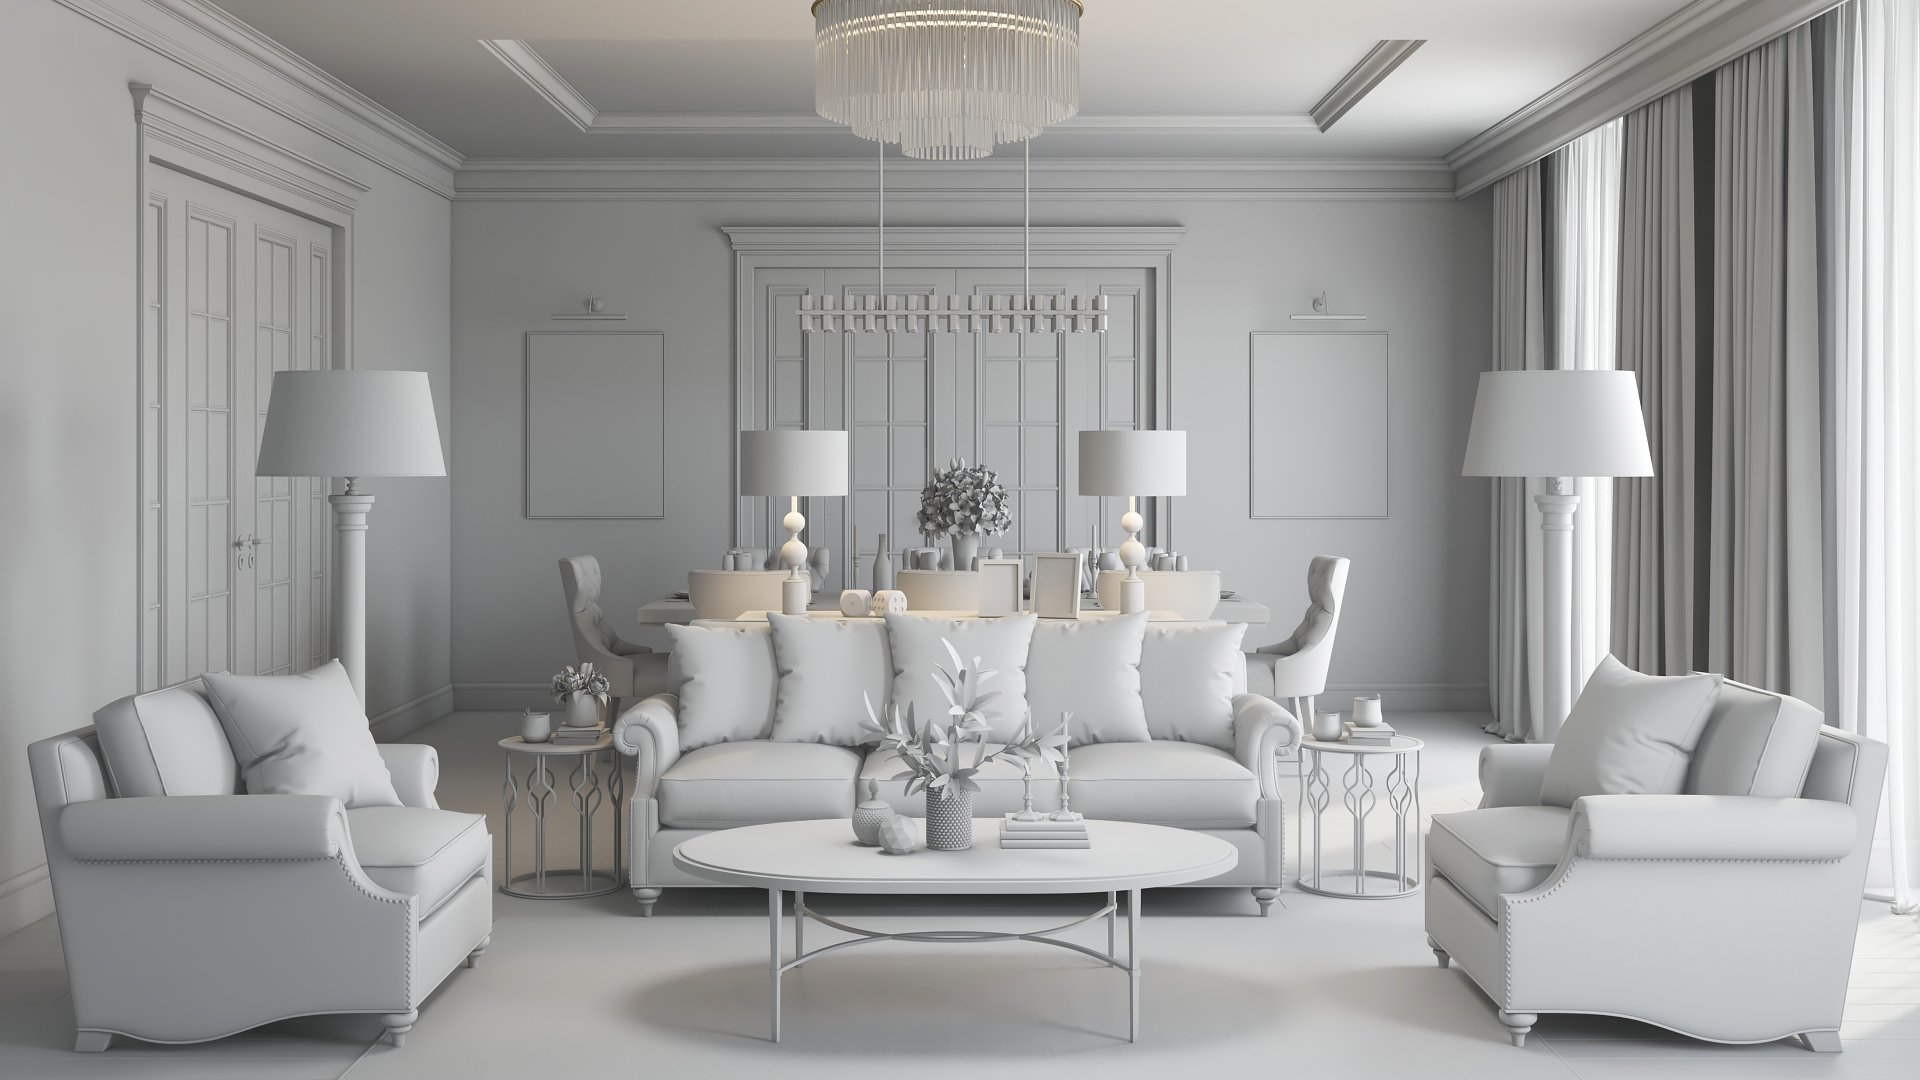 A Grayscale CG Rendering for Interior Design